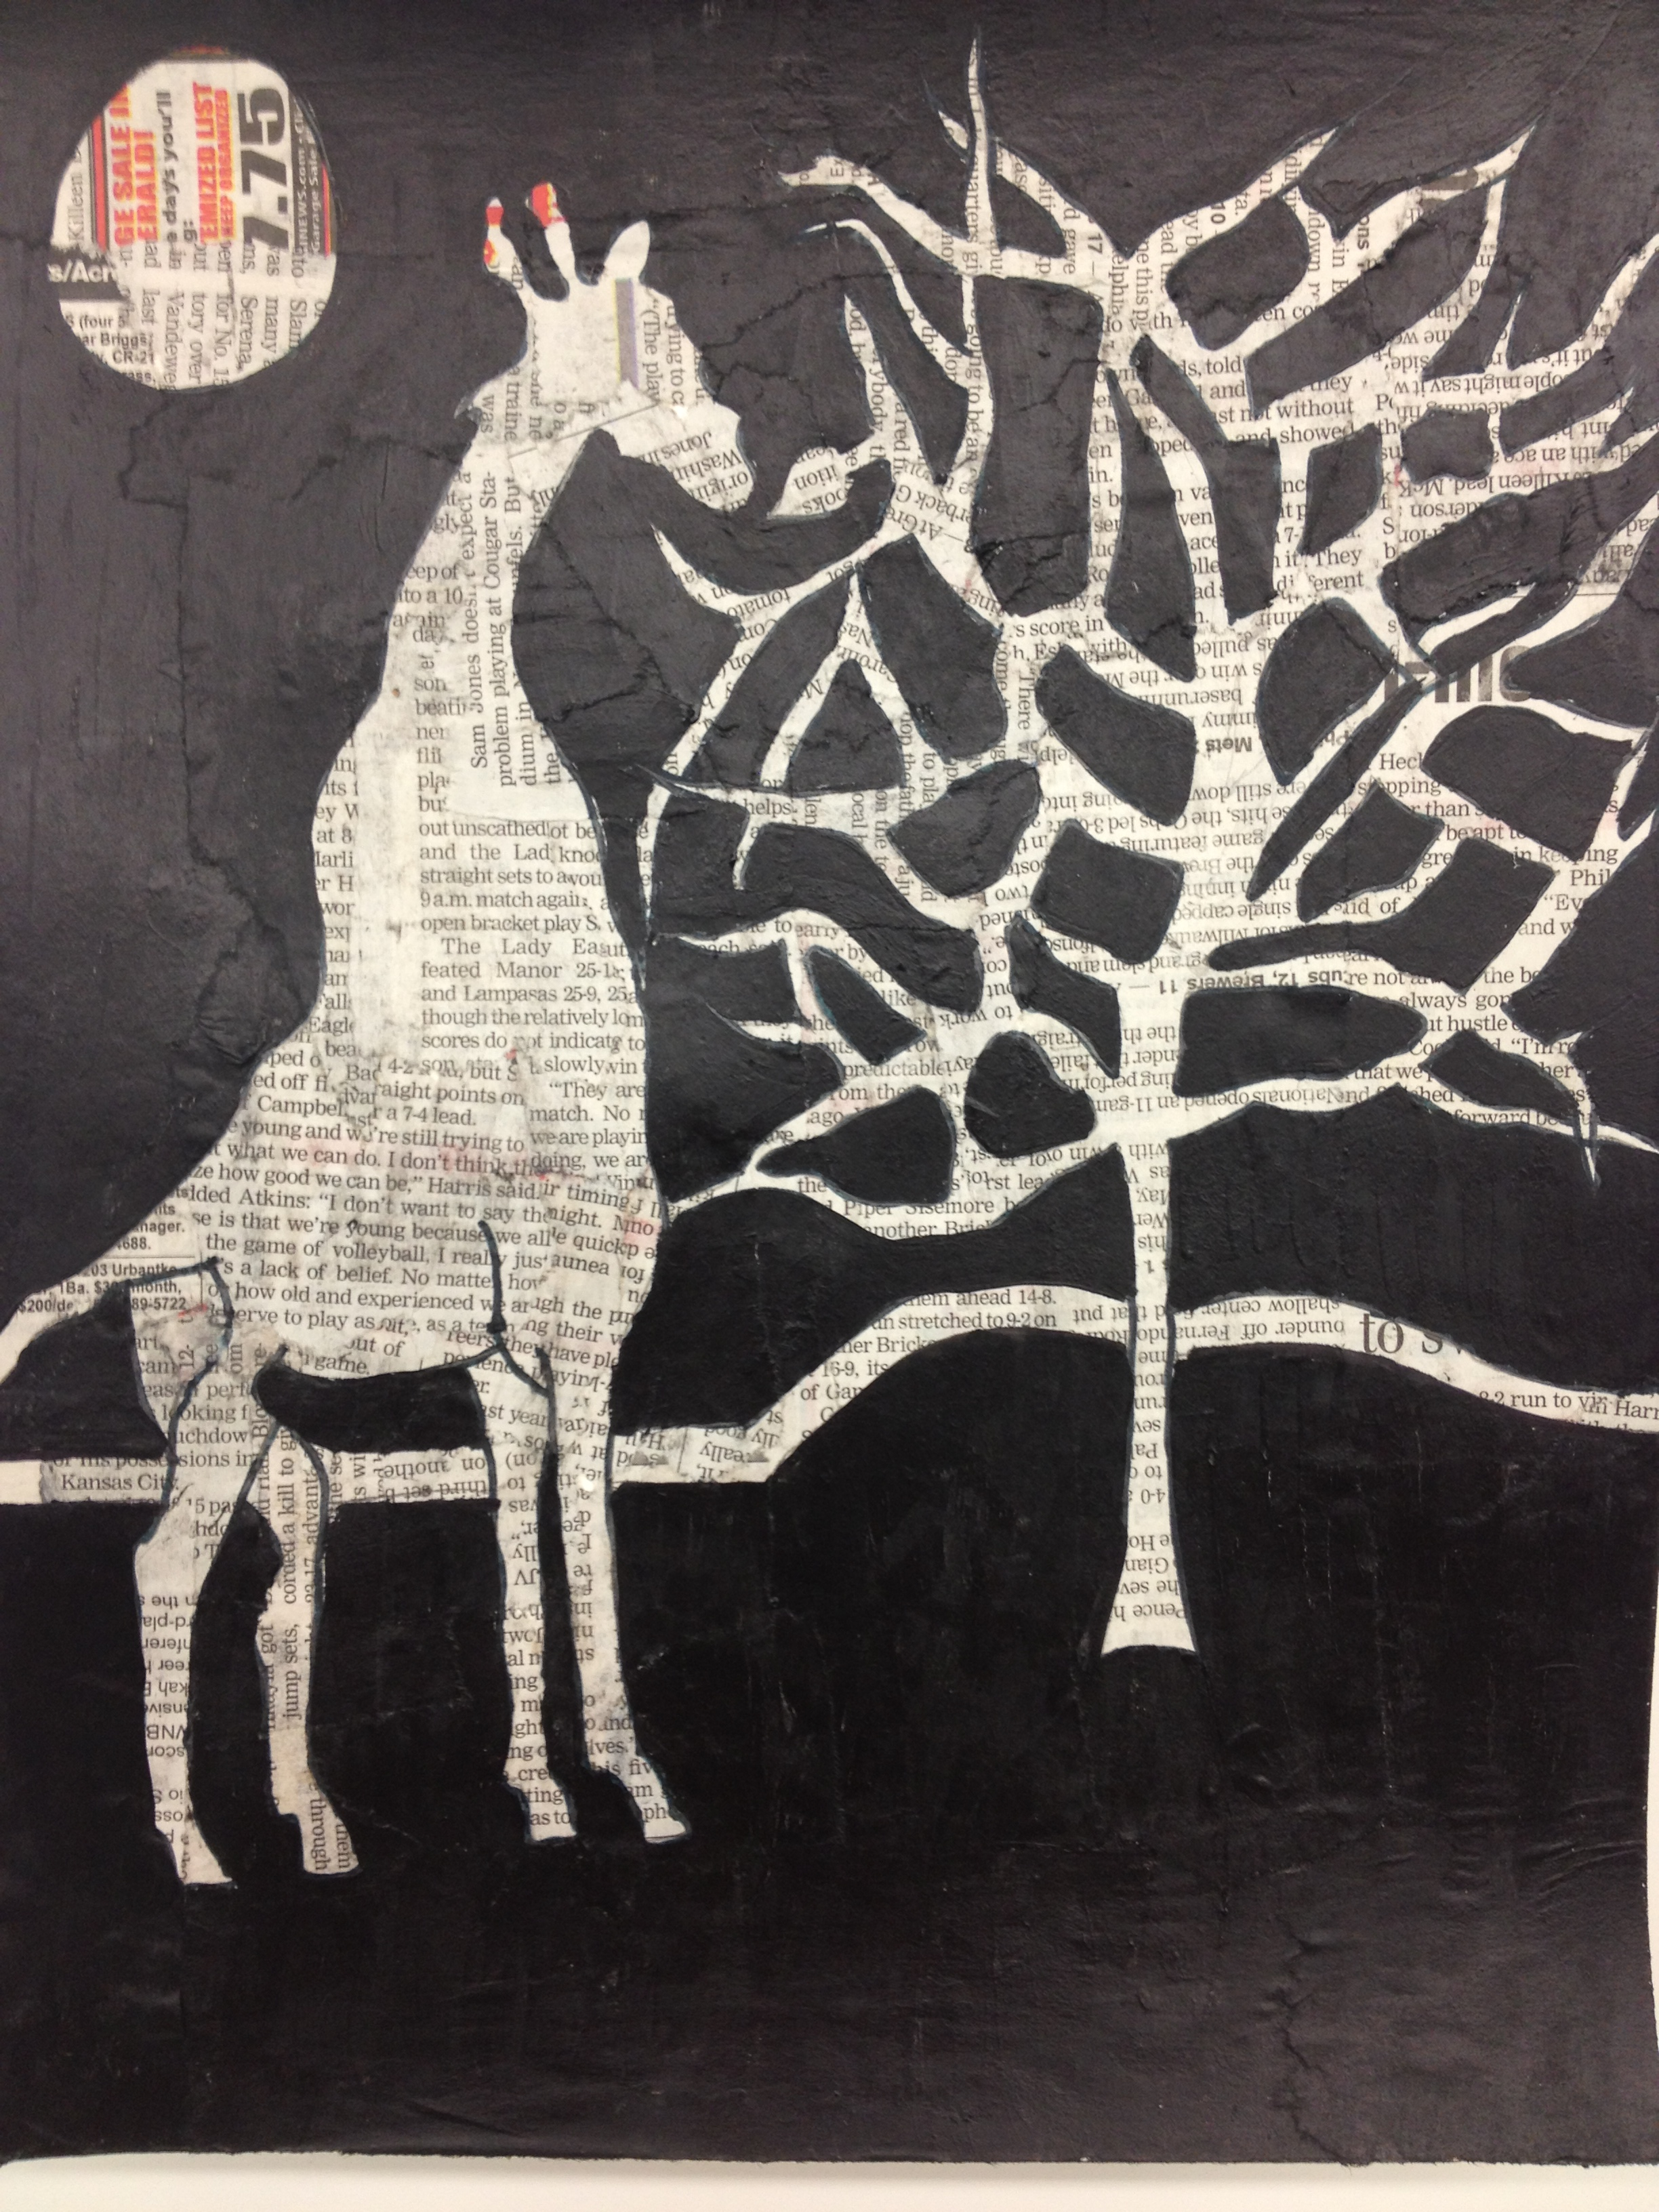 Negative Space Painting Elam S Art History